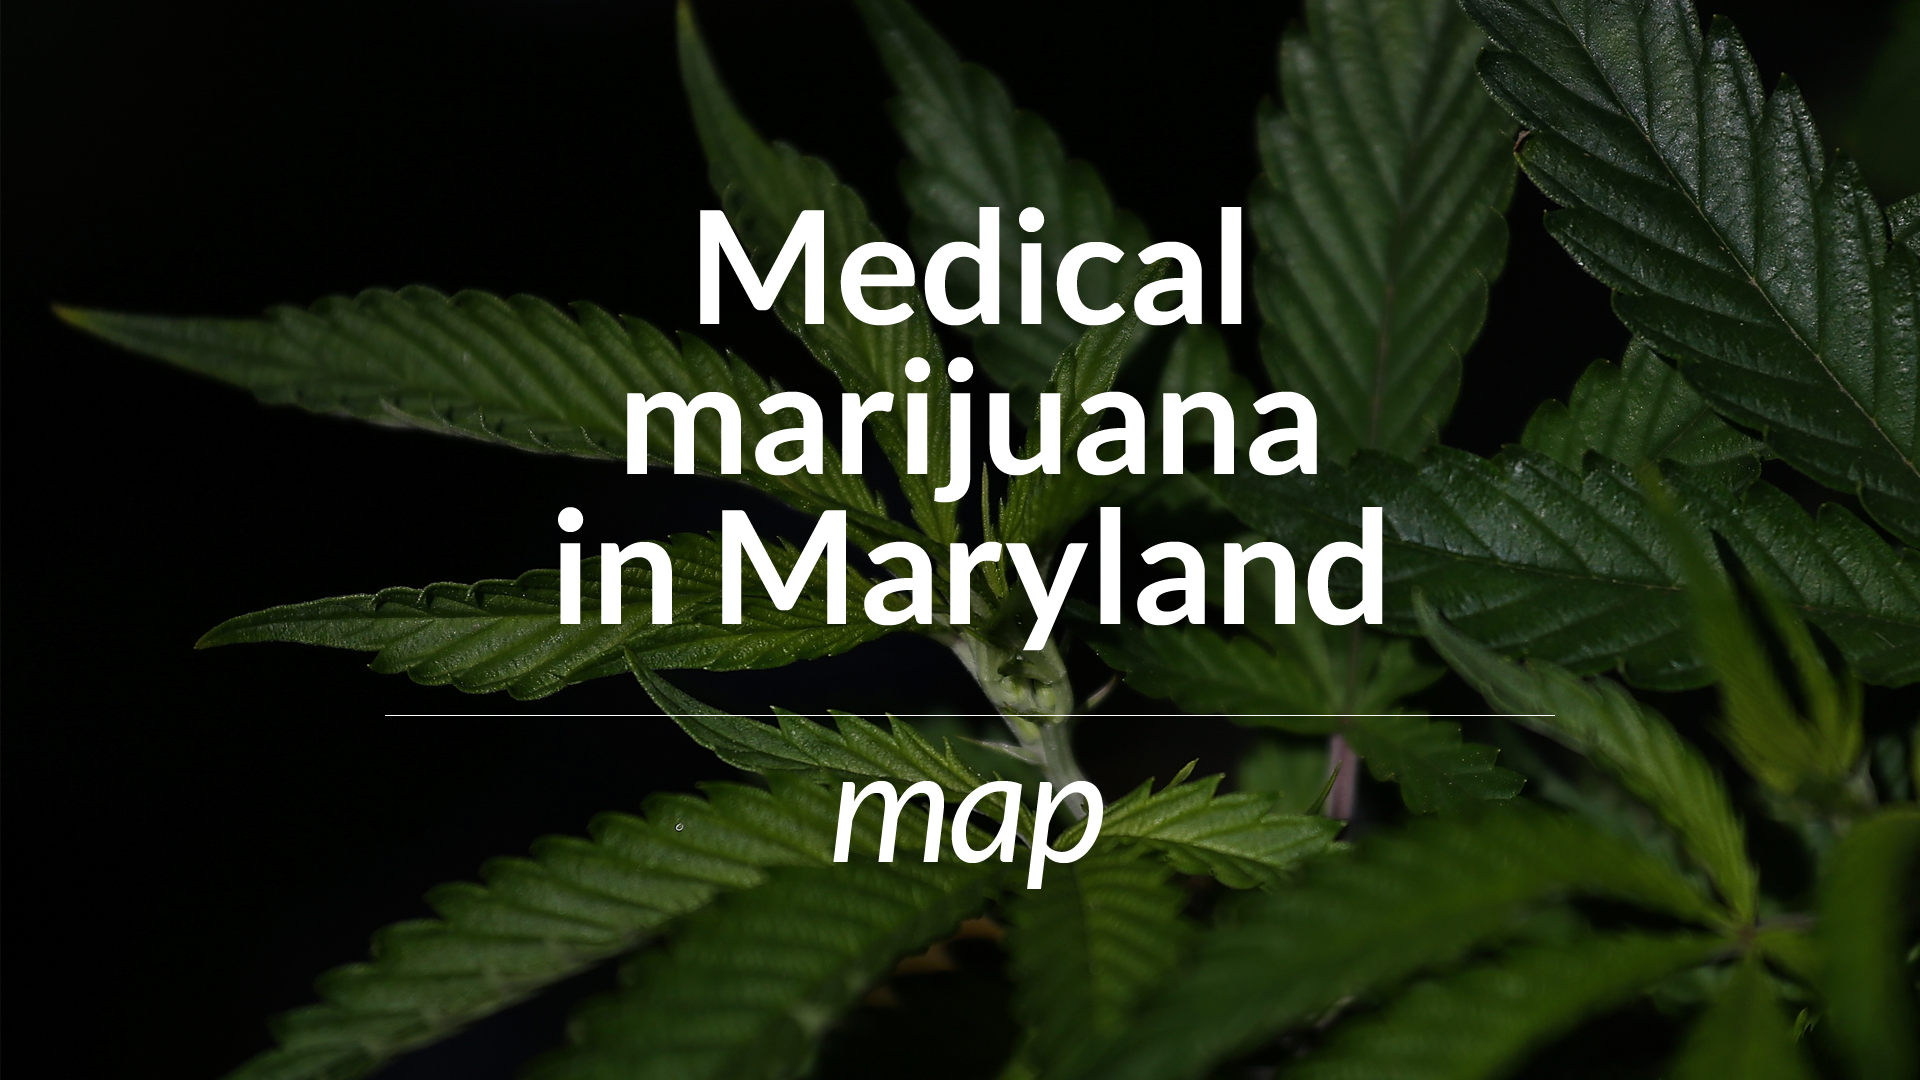 maryland officials expect to award preliminary licenses